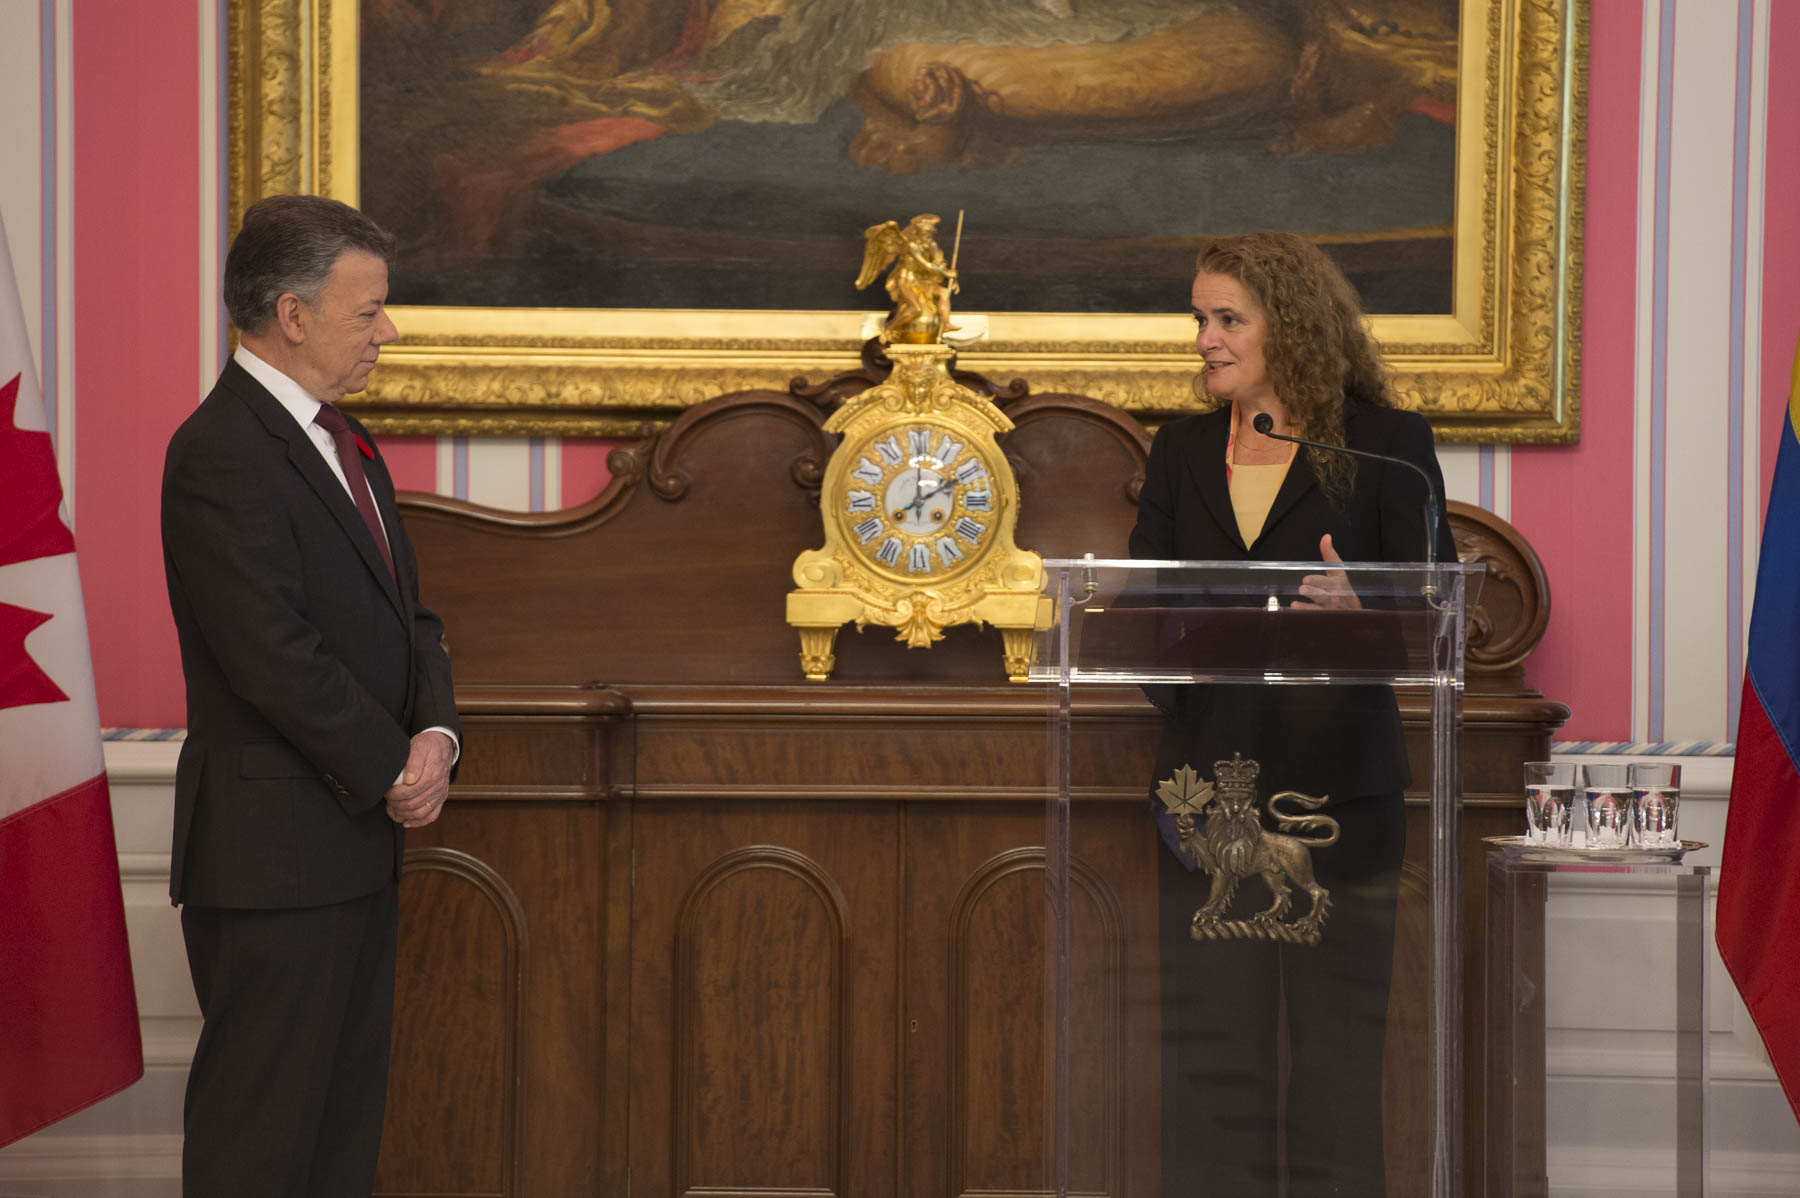 """On behalf of all Canadians, I would like to congratulate you and your government, President Santos, for the leadership you have displayed in building a lasting peace in Colombia,"" said the Governor General. ""For this remarkable achievement, you most deservedly received the Nobel Peace Prize last year – Congratulations! I can assure you that you have the complete support of Canada in the continuation of this essential peace process. We believe in working together to overcome differences for the well-being of all,"" Her Excellency added."